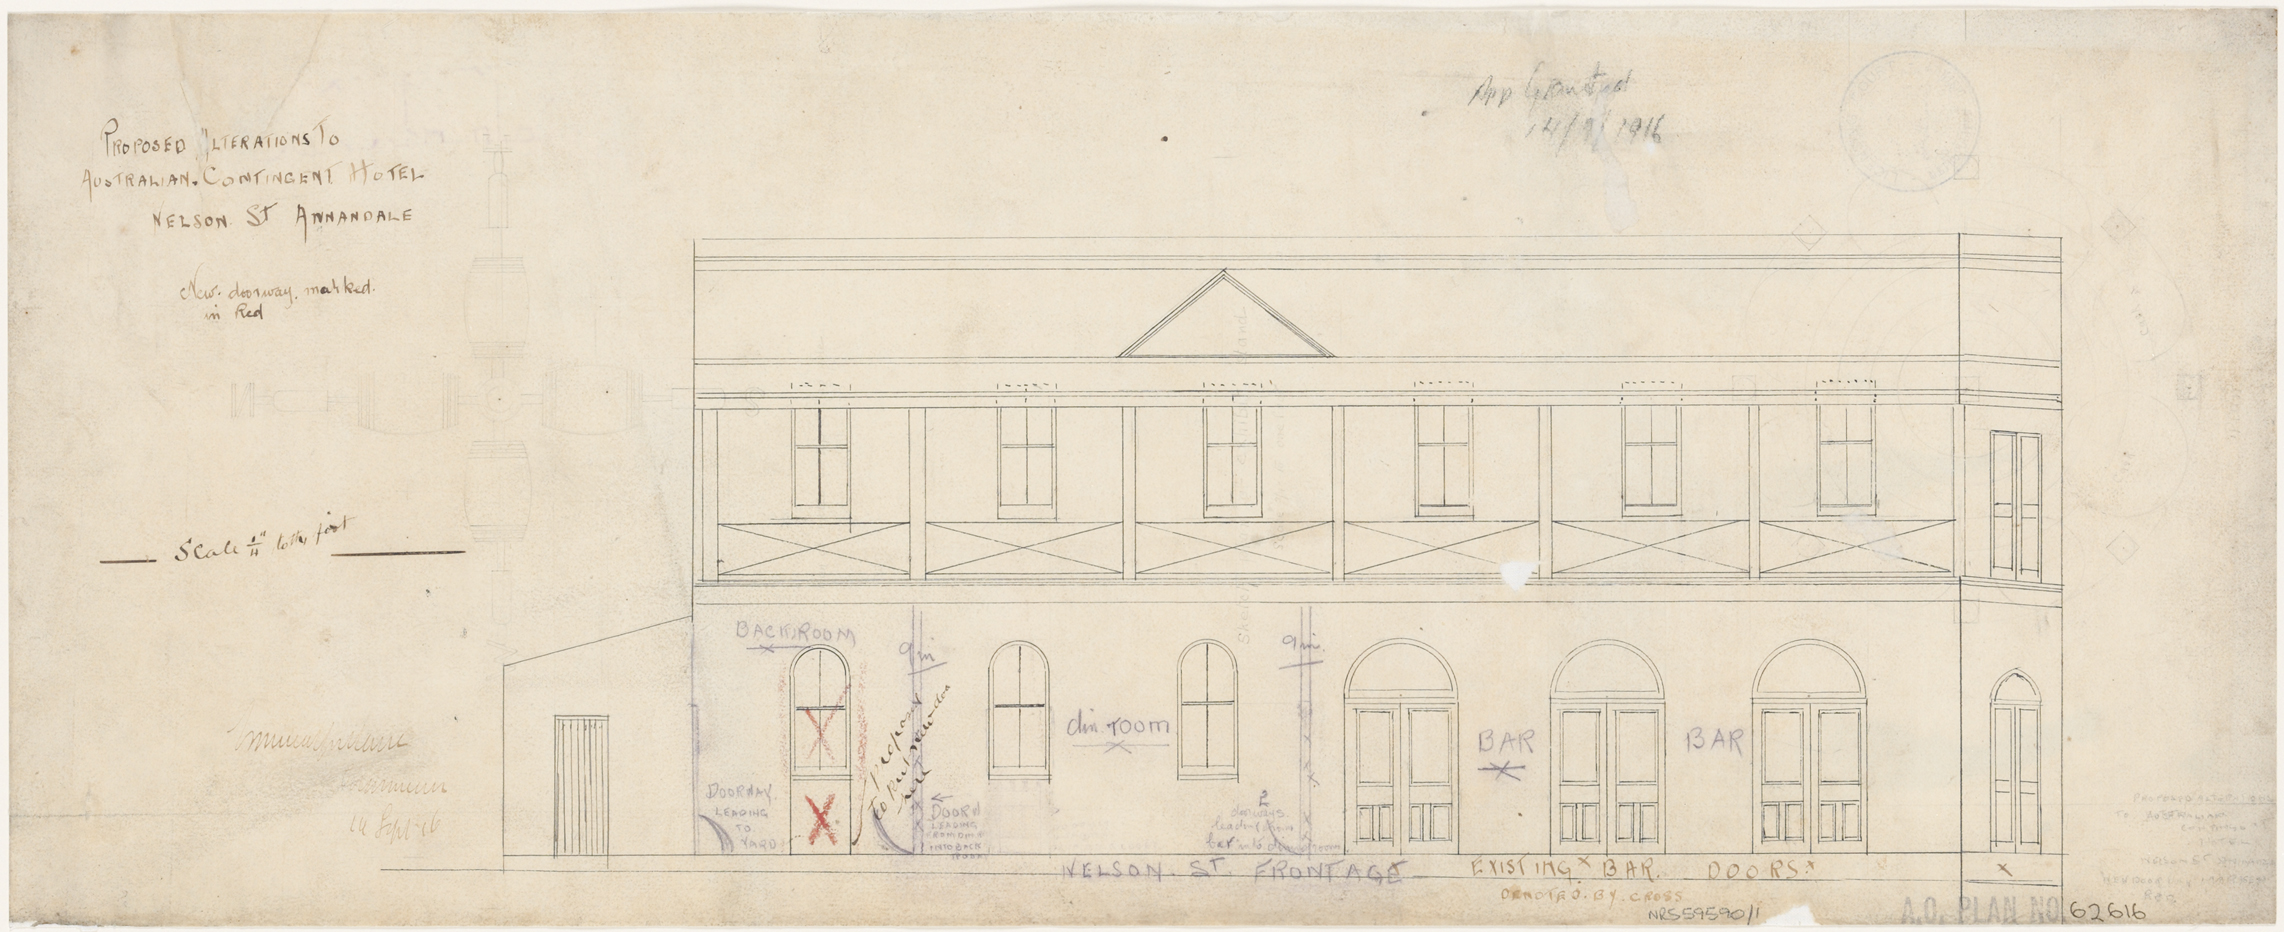 Australian Contingent Hotel, Nelson Street, Annandale, Proposed alterations, floor plan Nelson Street frontage.  Application granted 14 September 1916